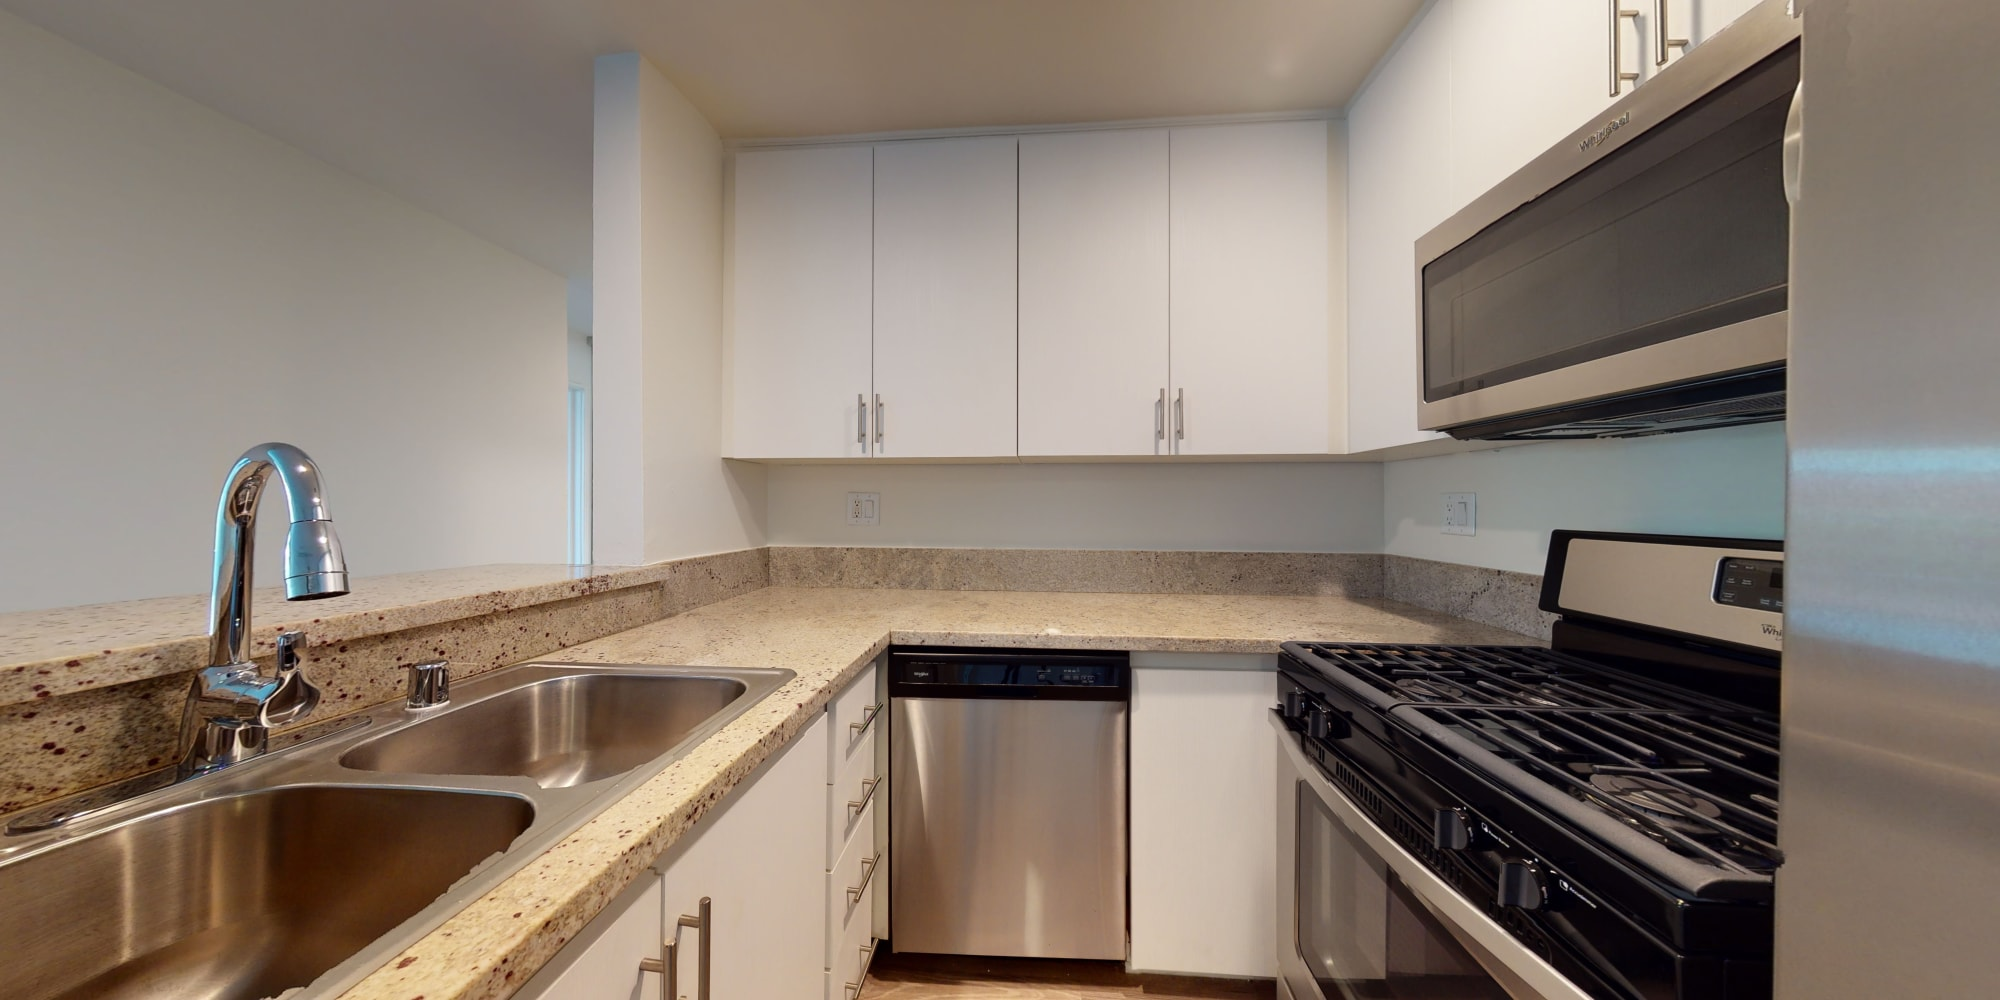 Classic apartment's kitchen with stainless-steel appliances and a dual-basin sink at Sunset Barrington Gardens in Los Angeles, California